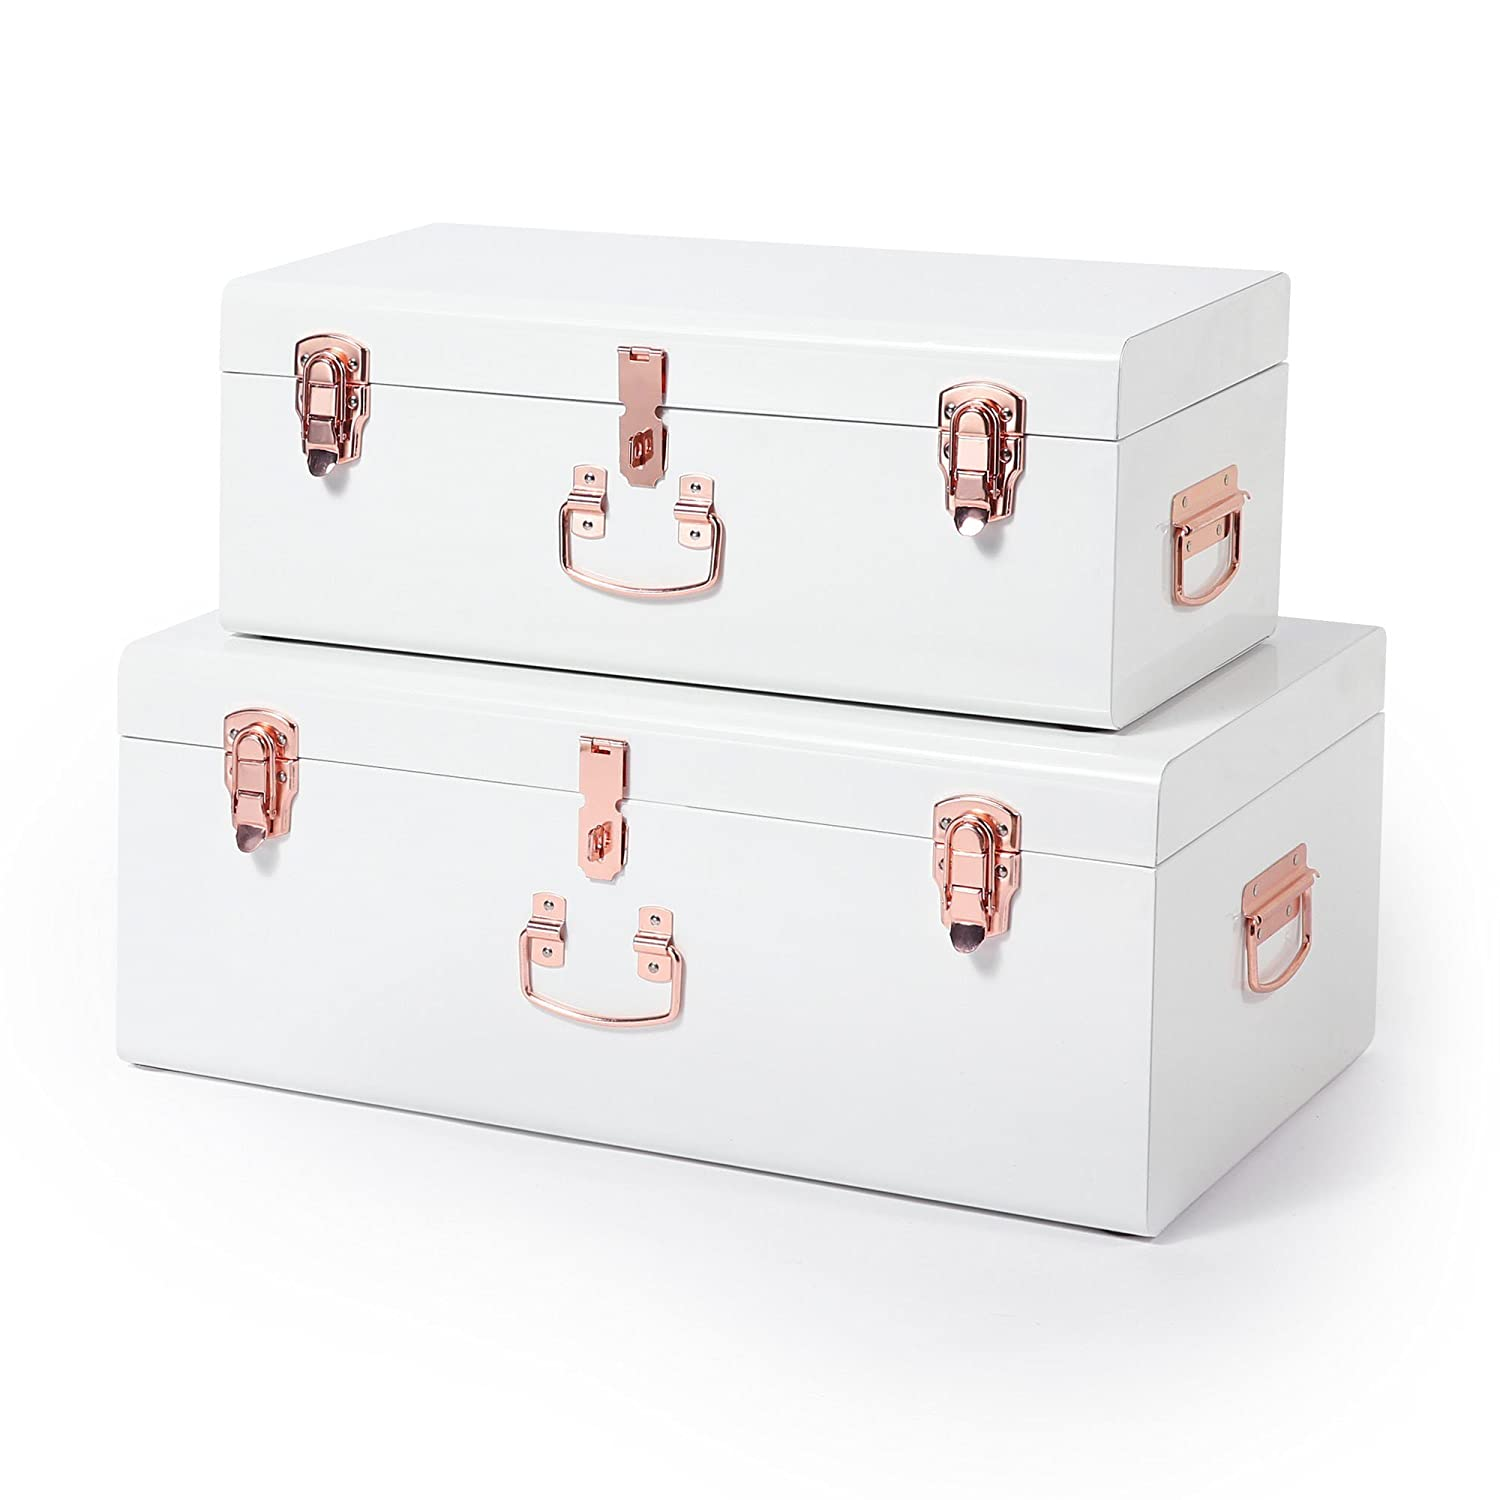 Beautify Extra Large Storage Trunks Set of 2 Chests for Bedroom, Living Room – White & Champagne Colour